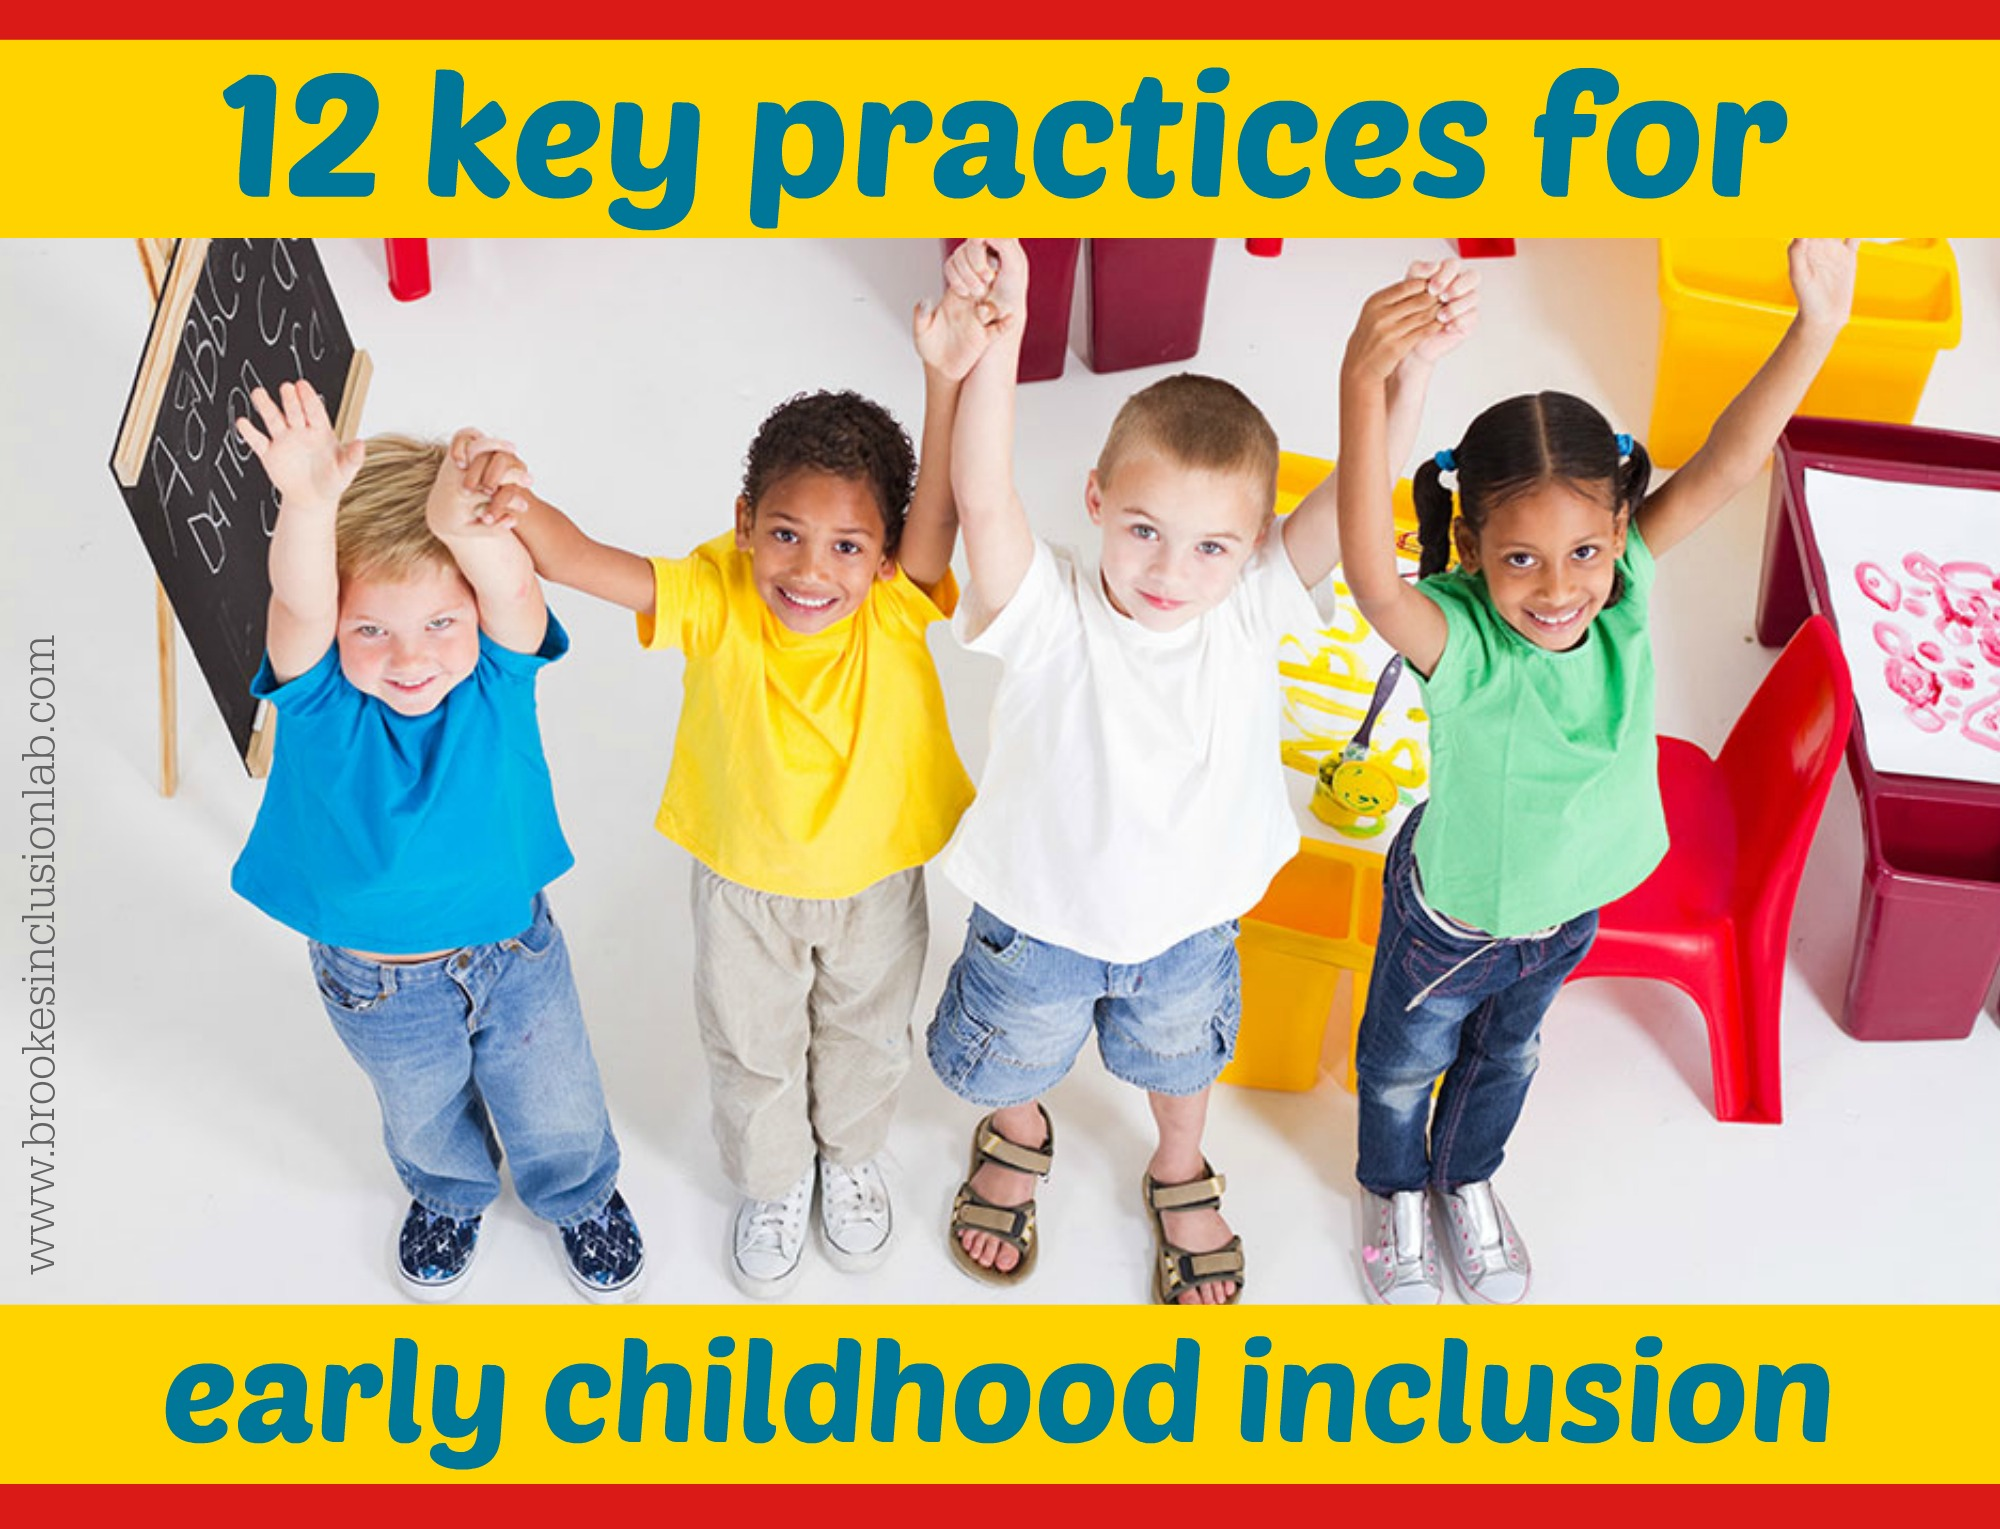 12 key practices for high quality early childhood inclusion